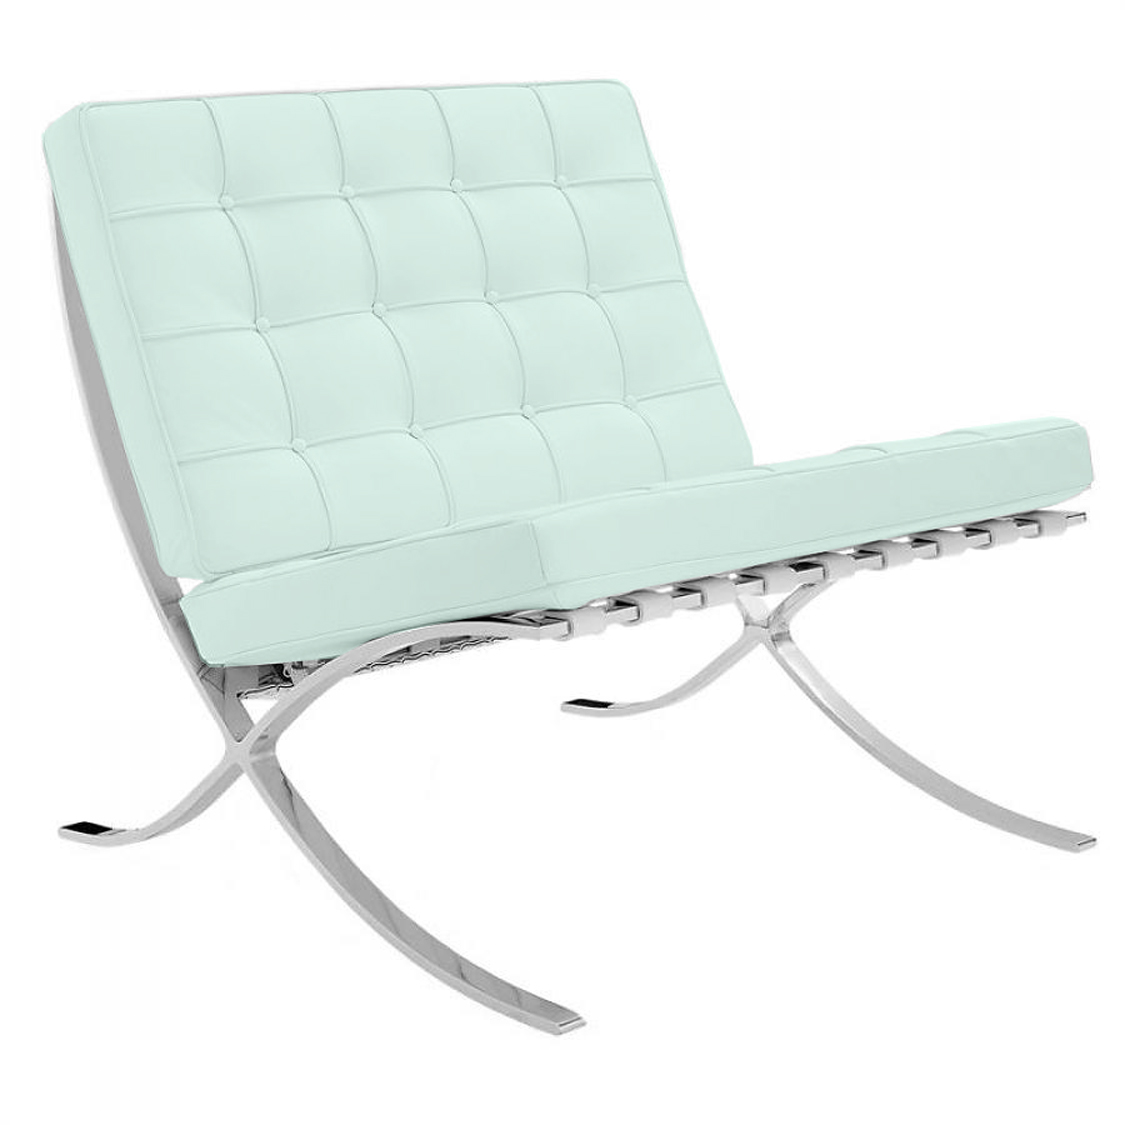 Mies Barcelona Chair in Mint Green Leather